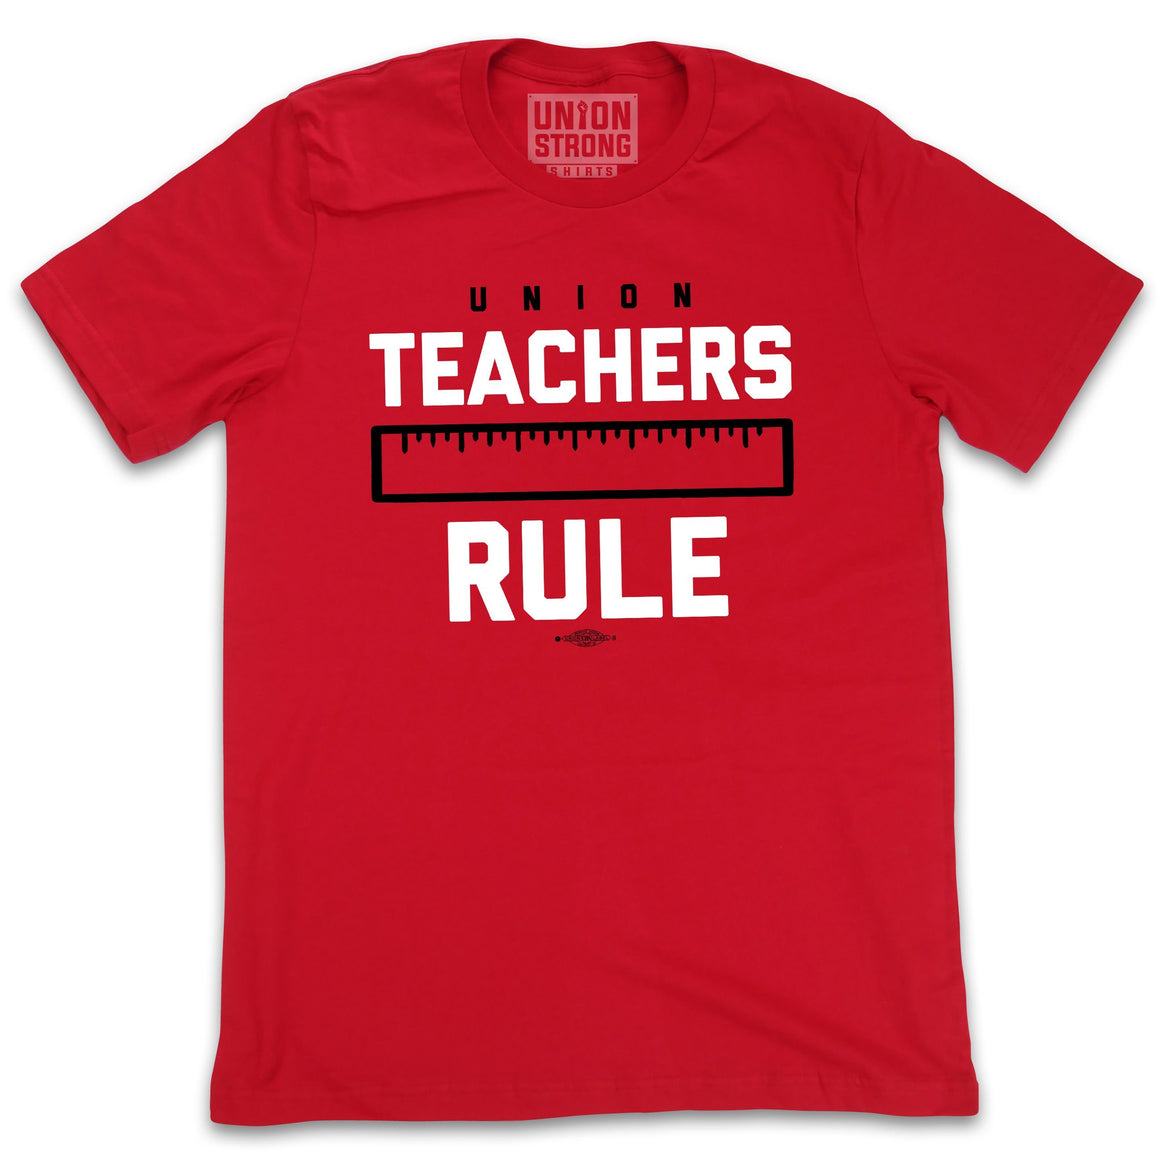 Teachers Rule - Red Shirt Shirts unionstrongshirts